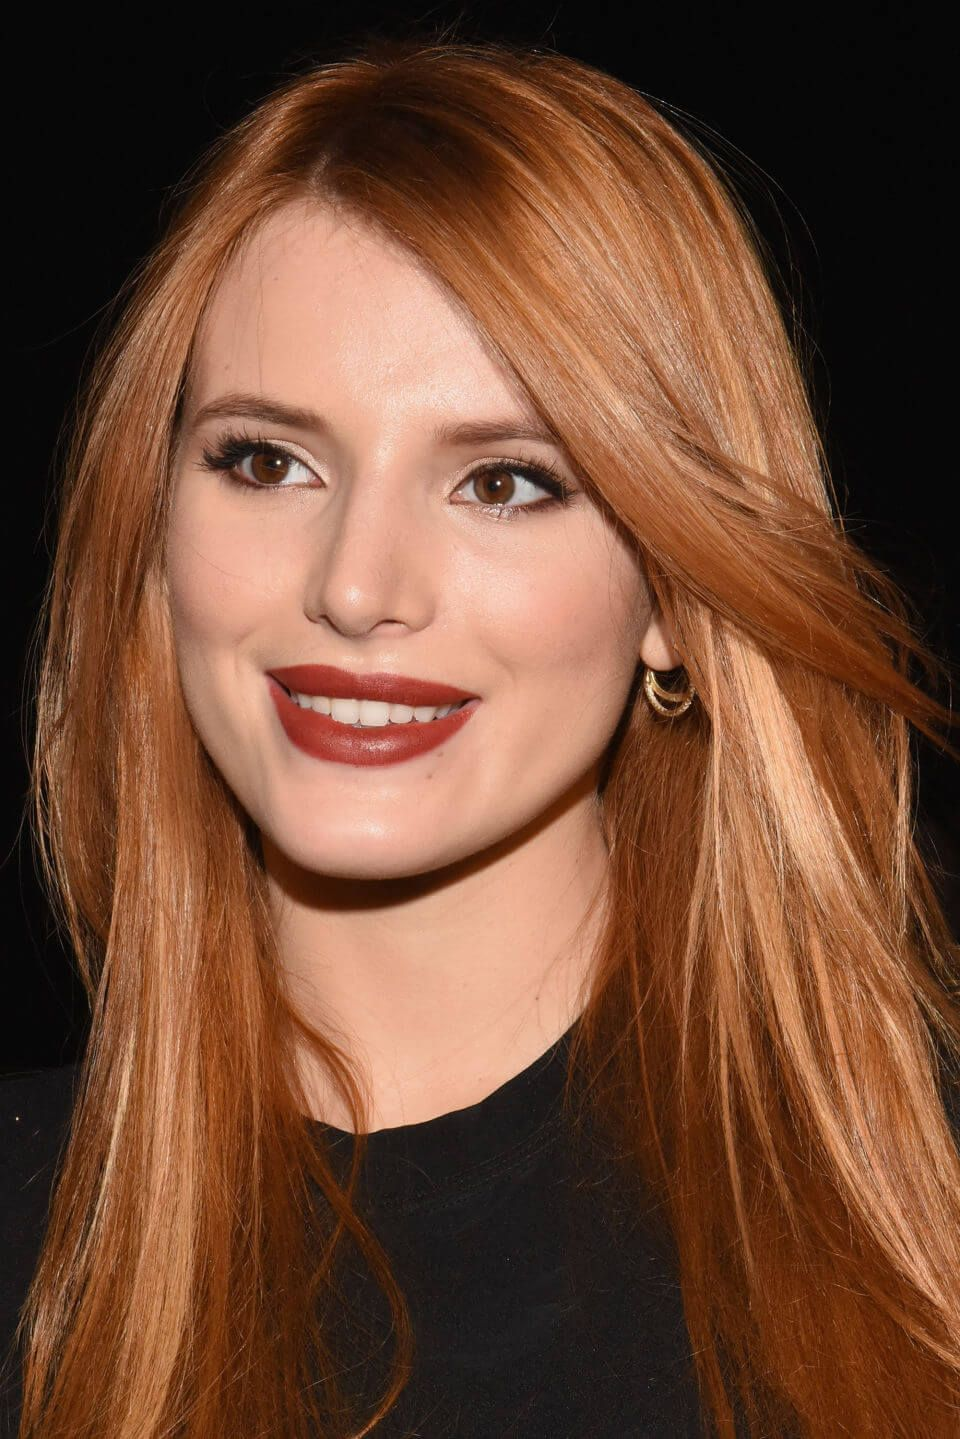 Trending Now: Strawberry Blonde Looks That Suit All Complexions recommendations